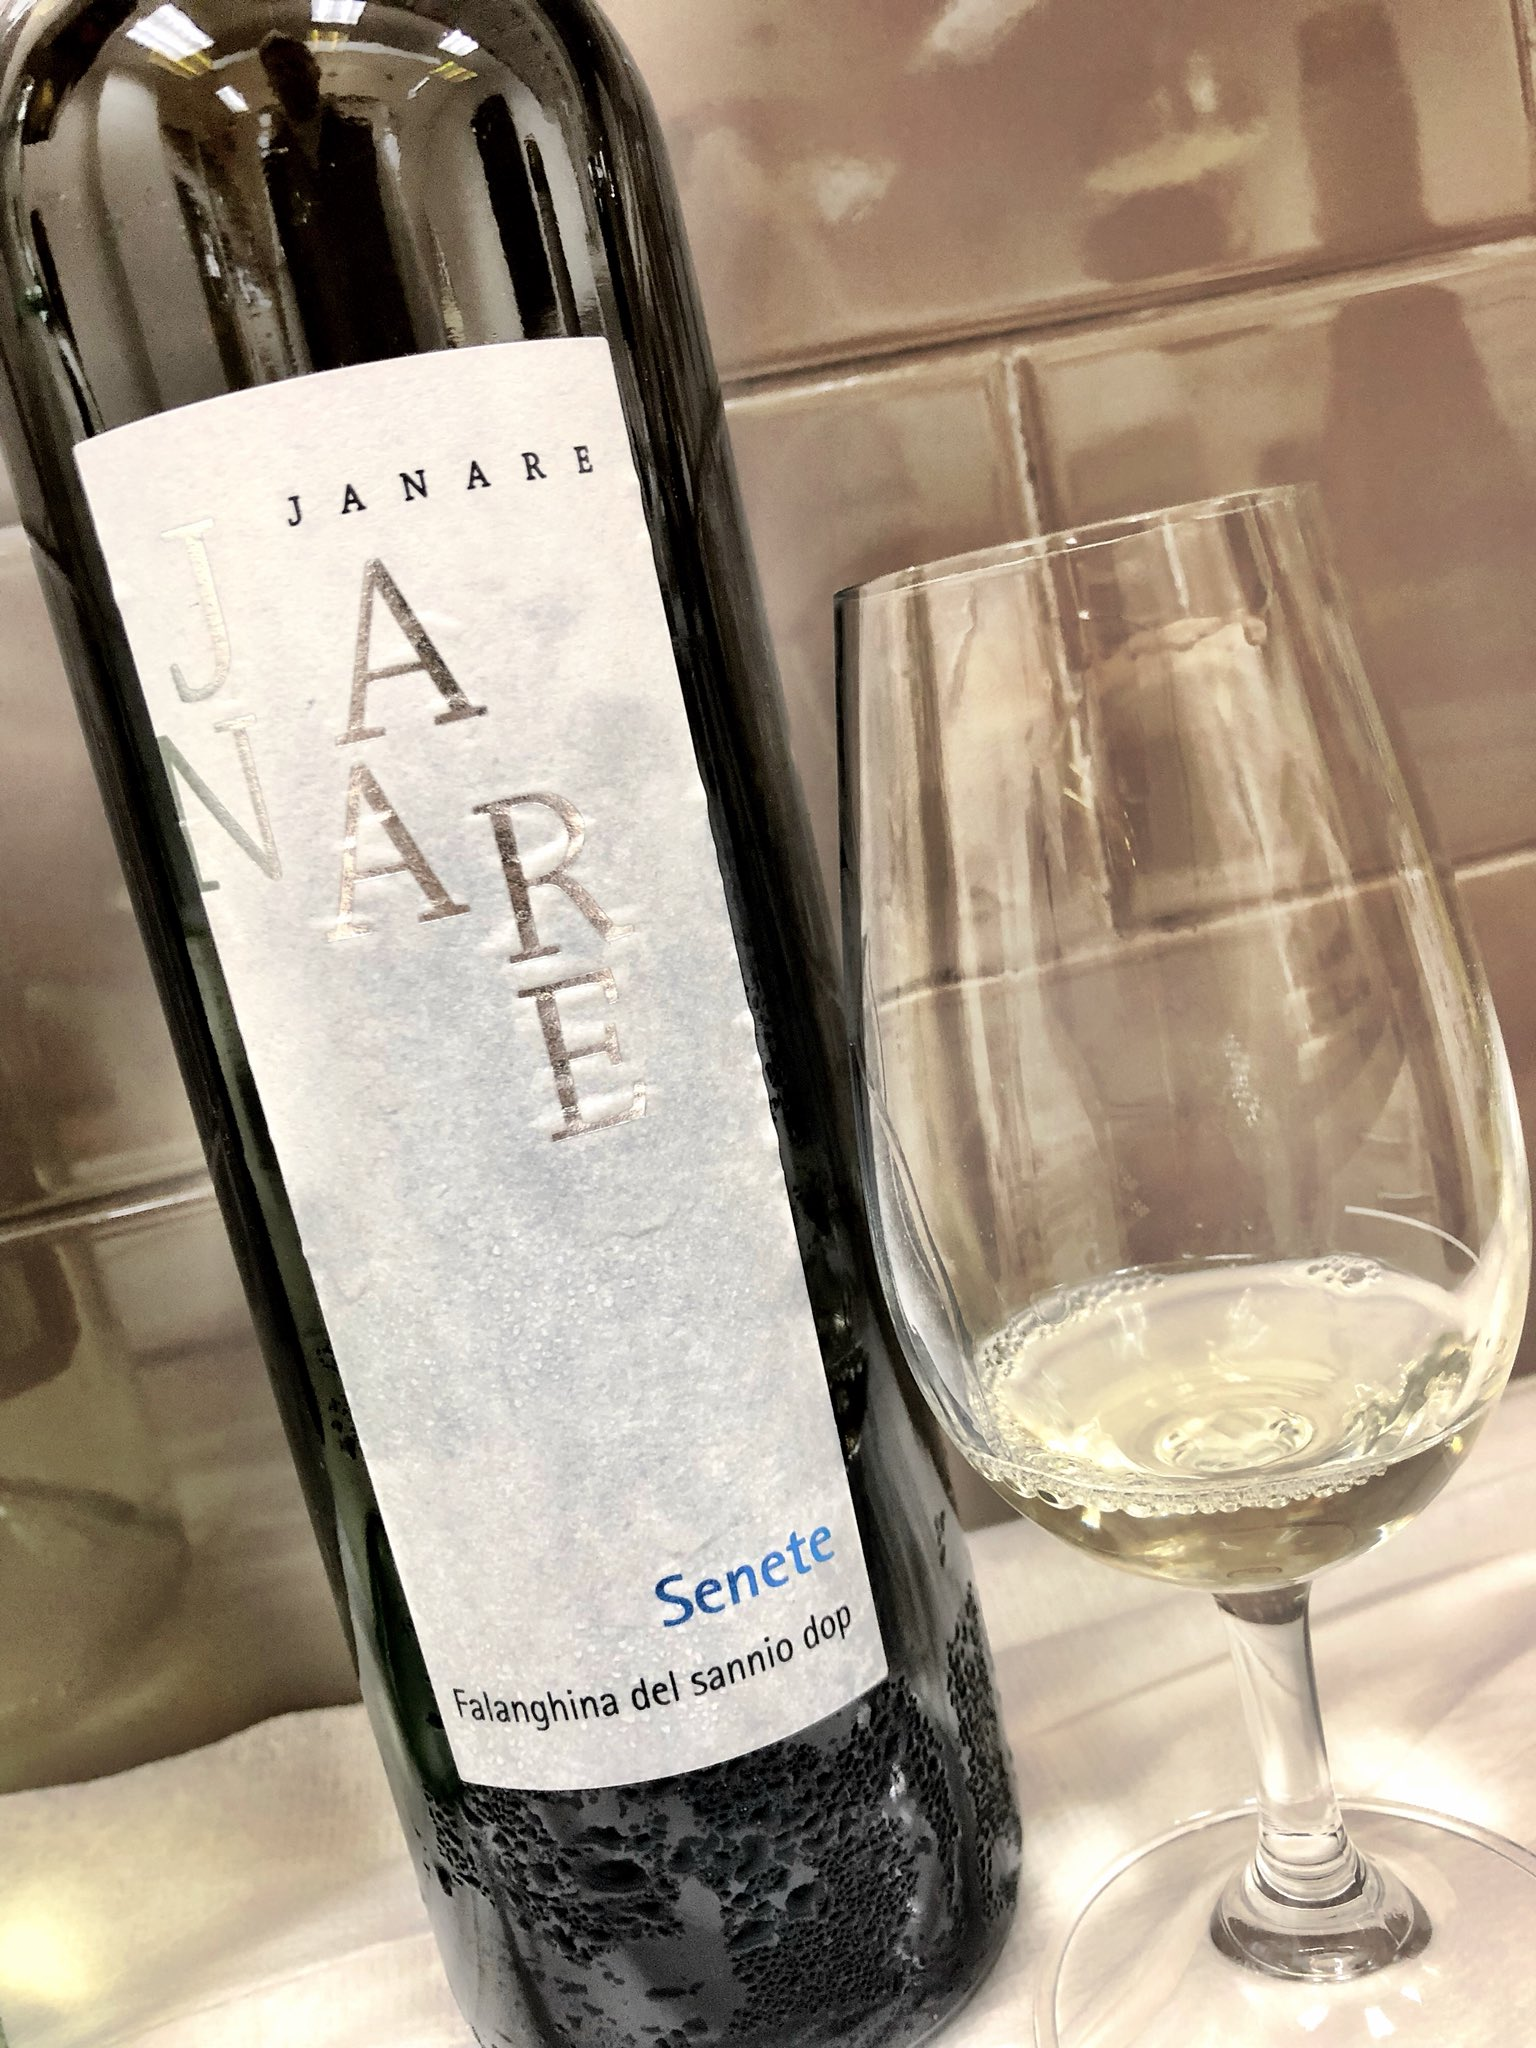 Do you love wines from #Campania as much as I do? Then this one! Janare #Falanghina $18.95 hunts of apricot and crisp acidity with a certain minerality that dances nicely through the palate. Try it with spicy calamari! #LCBO #Wine #WineTasting #Toronto #Lifestyle https://t.co/575zLvHMYc